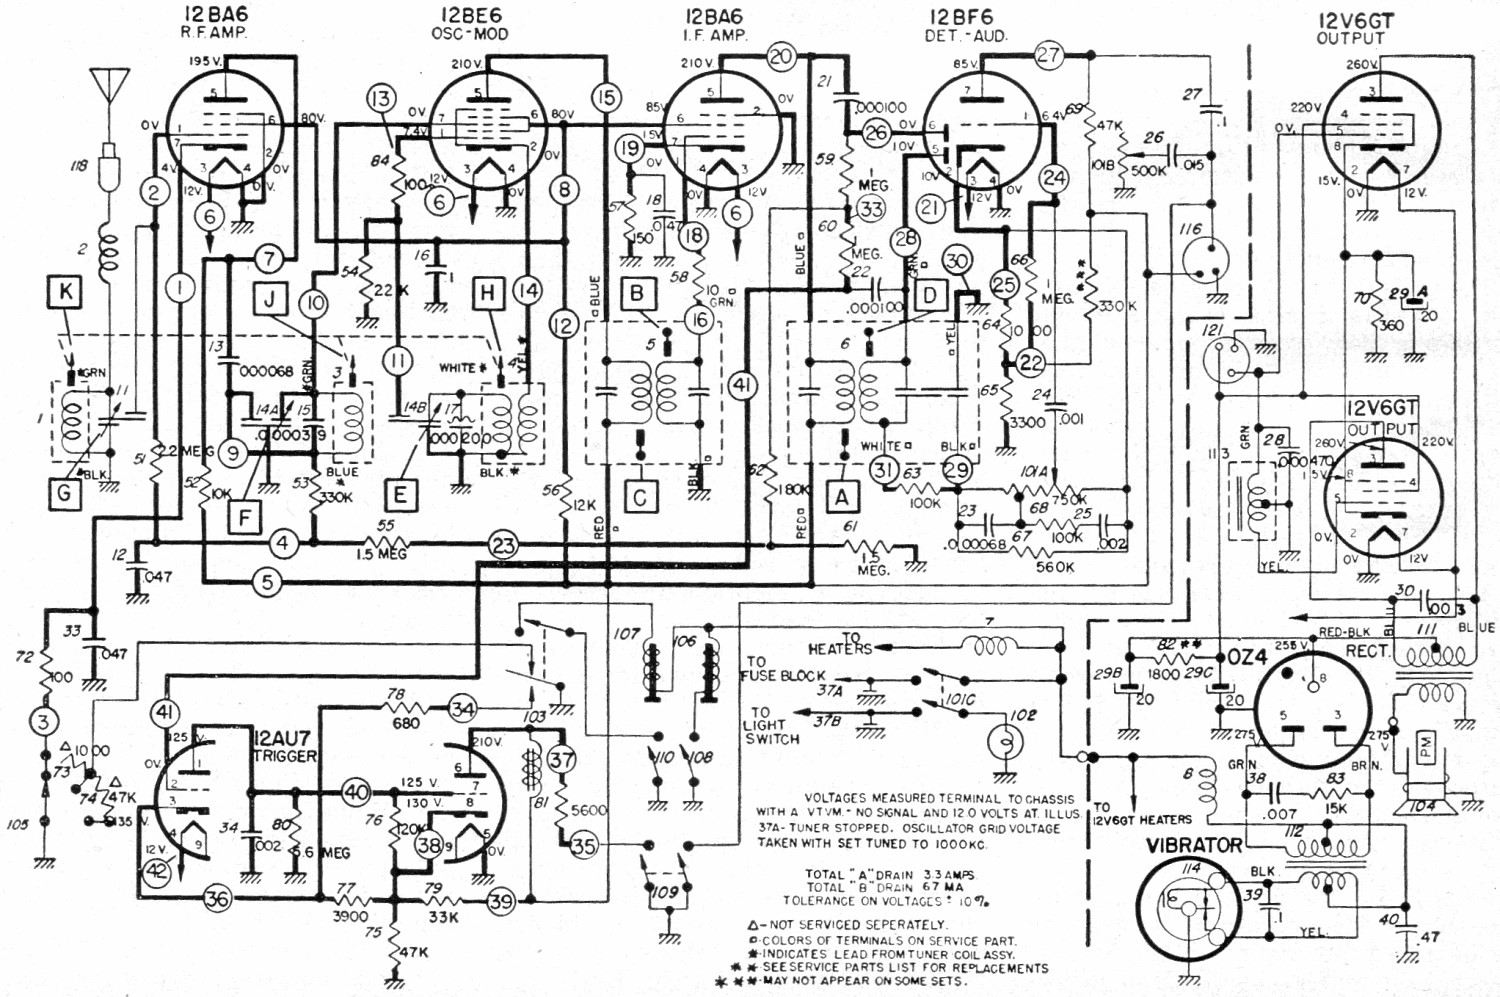 Am Radio Diagram Get Free Image About Wiring on bmw pdc wiring diagram